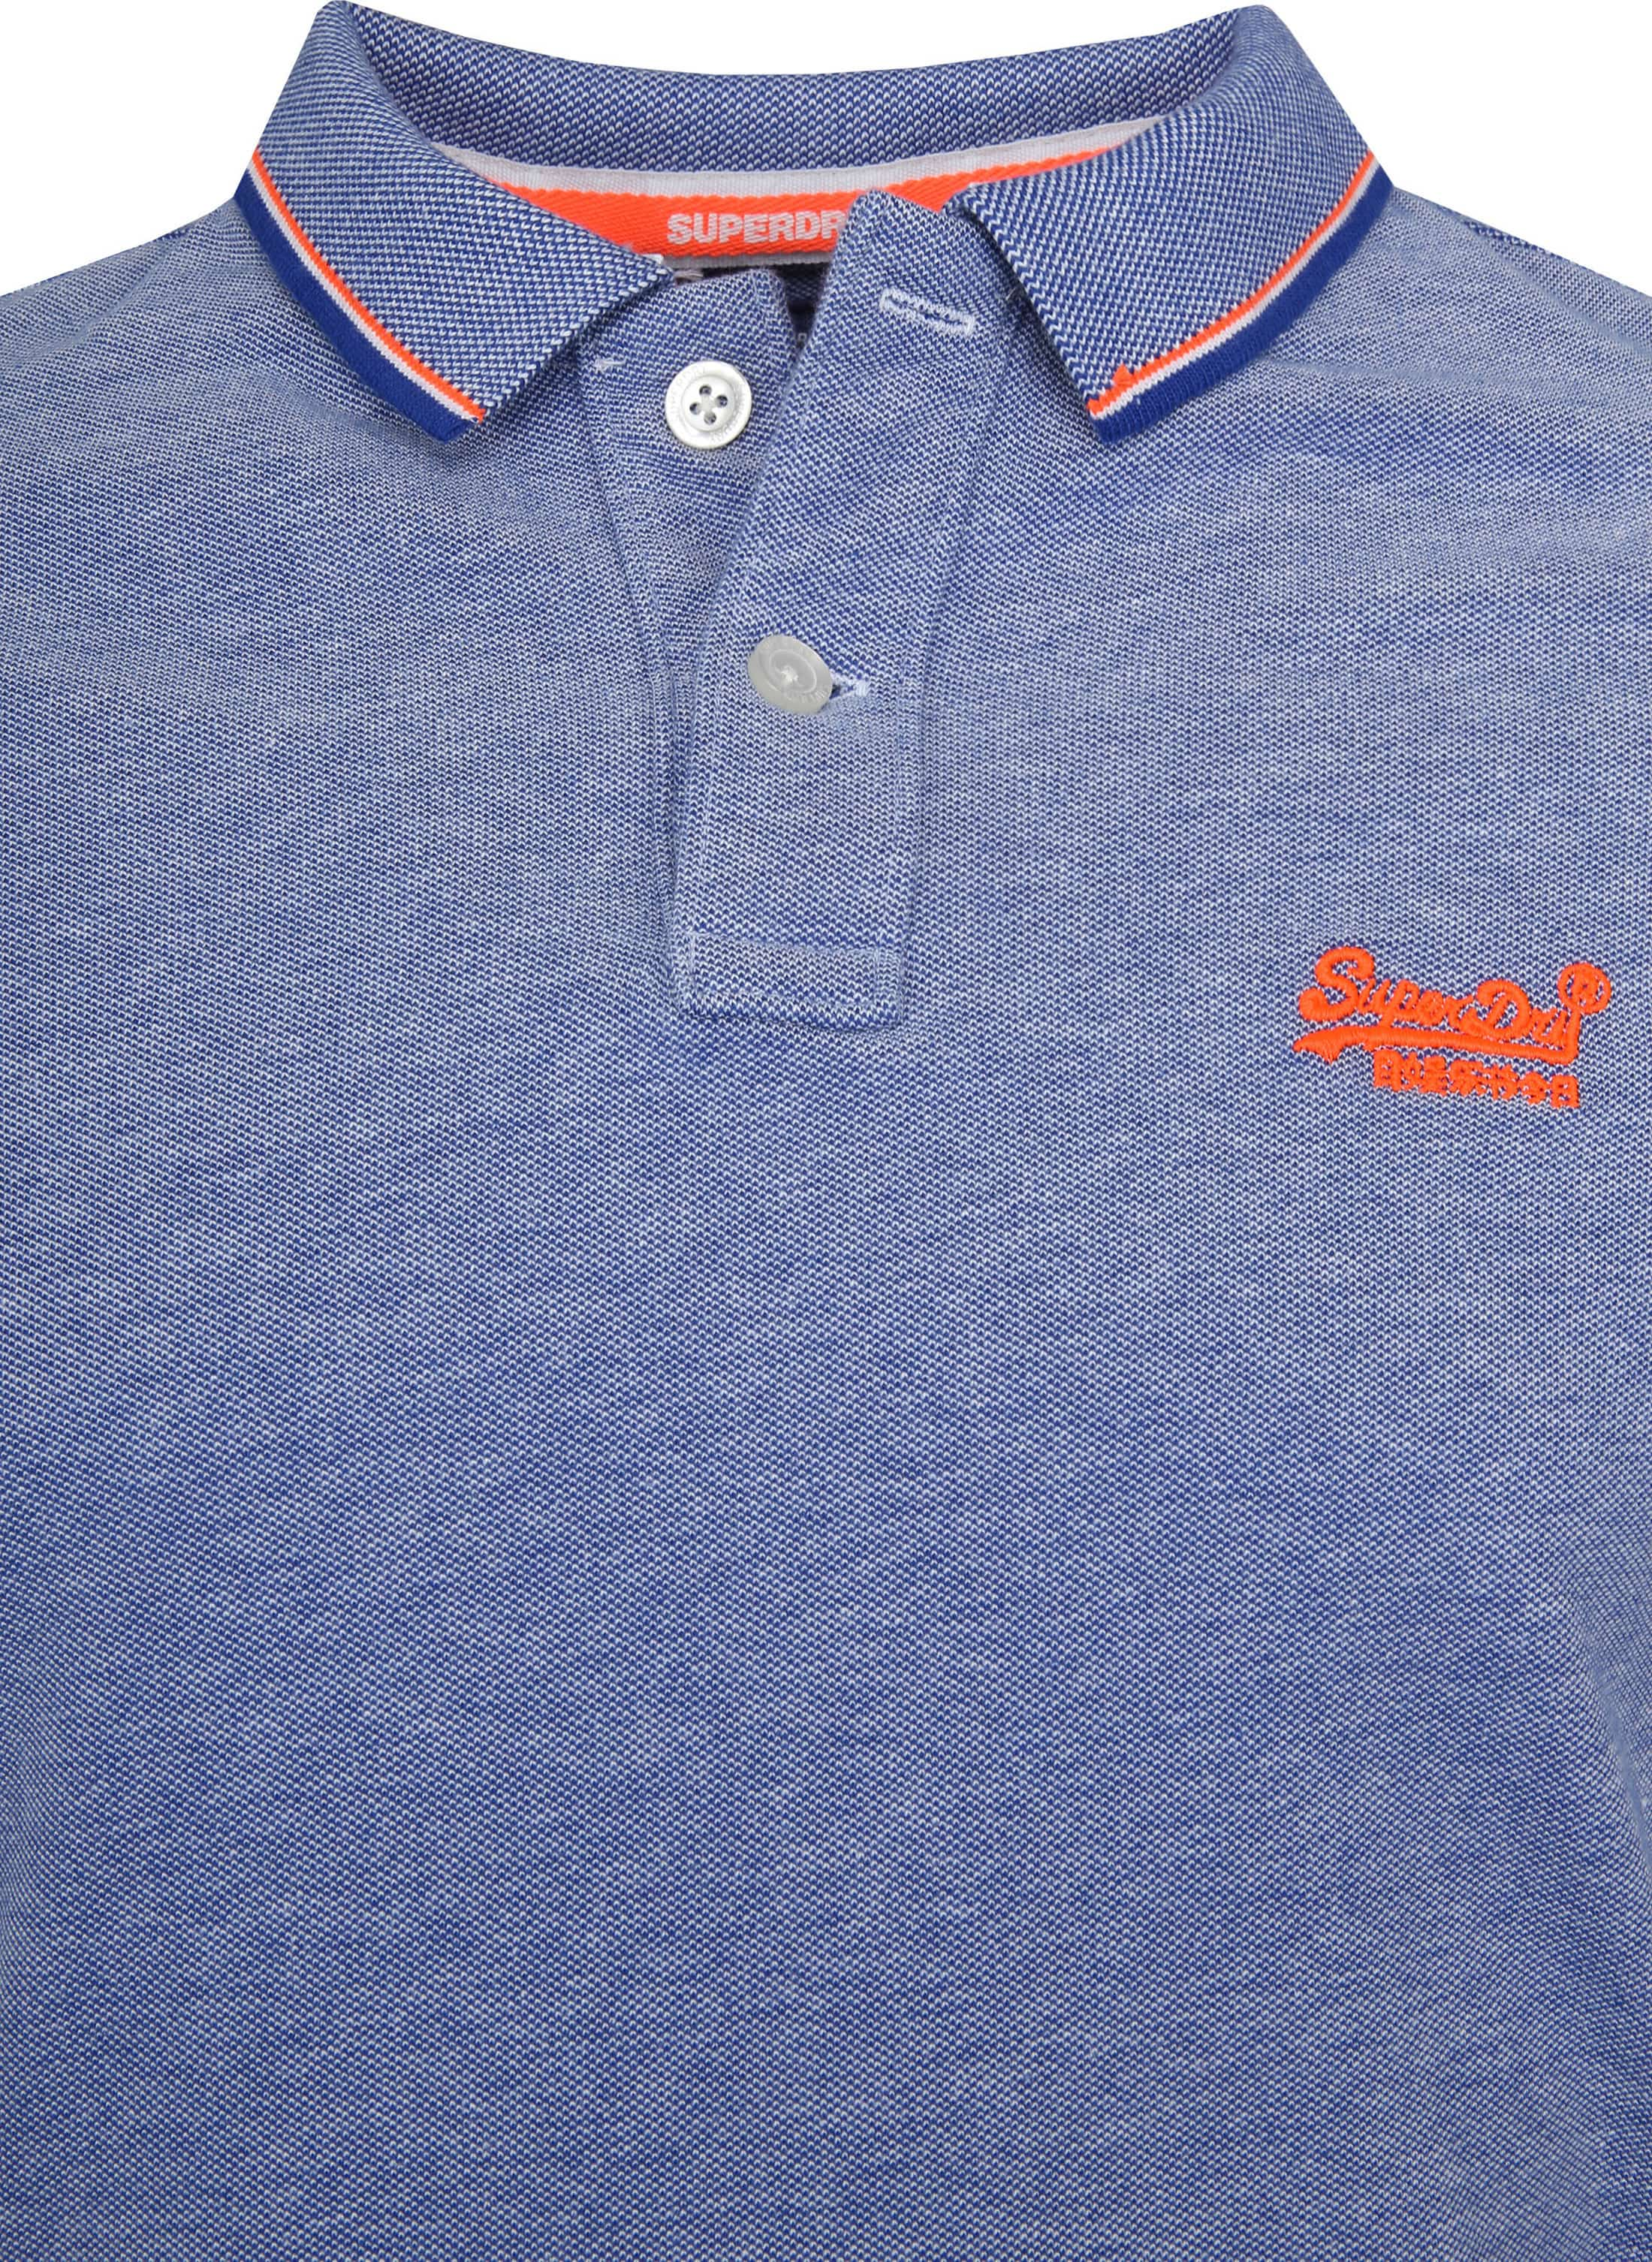 Superdry Premium Polo Blue foto 1